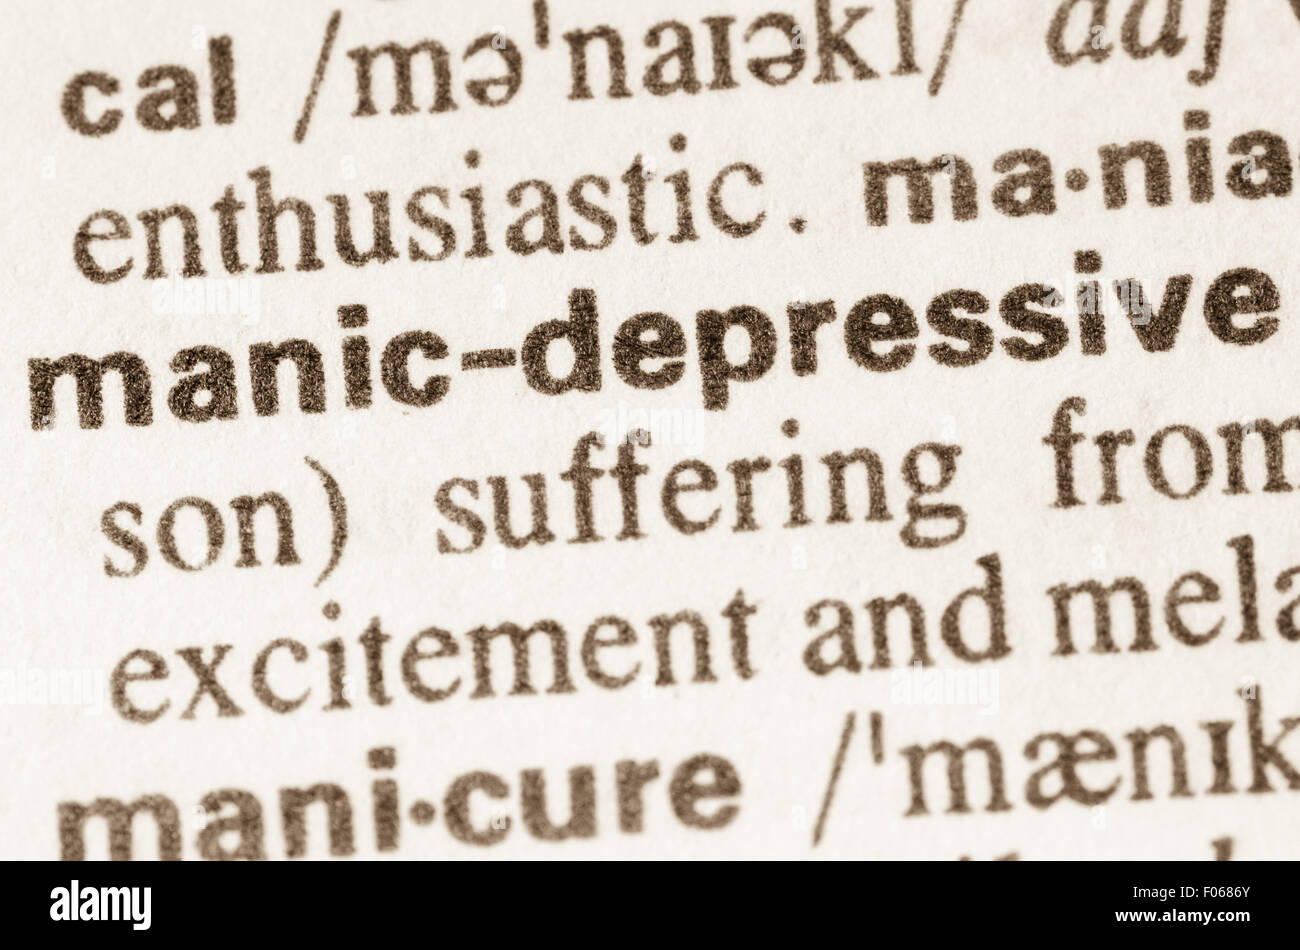 definition of word manic-depressive in dictionary stock photo